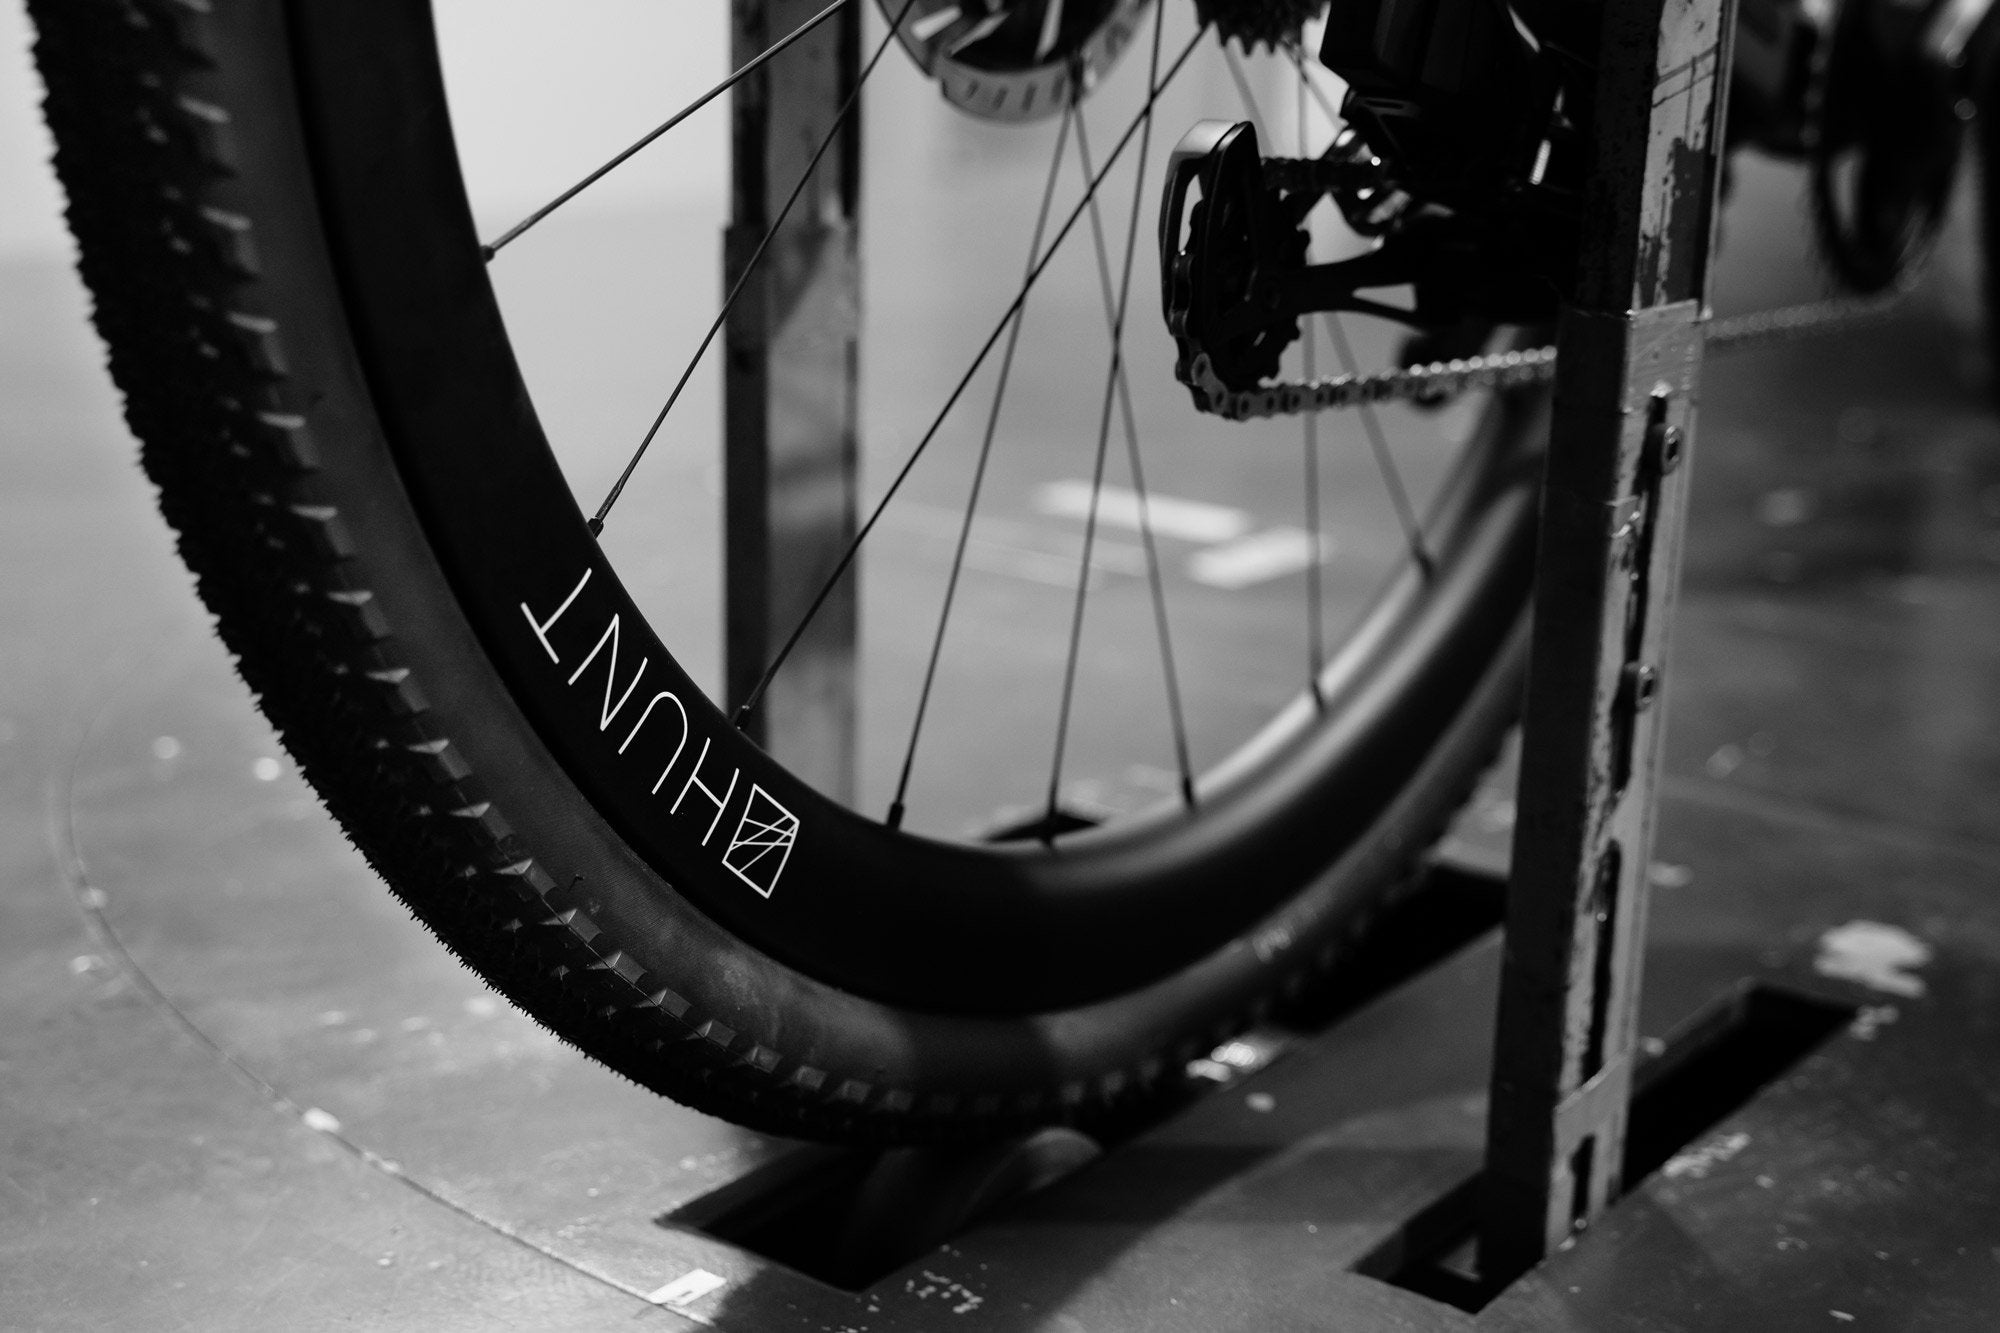 <h1>Wind tunnel proven</h1><i>Proven to offer the lowest aerodynamic drag among tested gravel-specific wheelsets under 50mm depth, offering the rider up to .12 Watt savings over renowned competitors, and 16.8 Watt savings over non-aero gravel wheels</i>